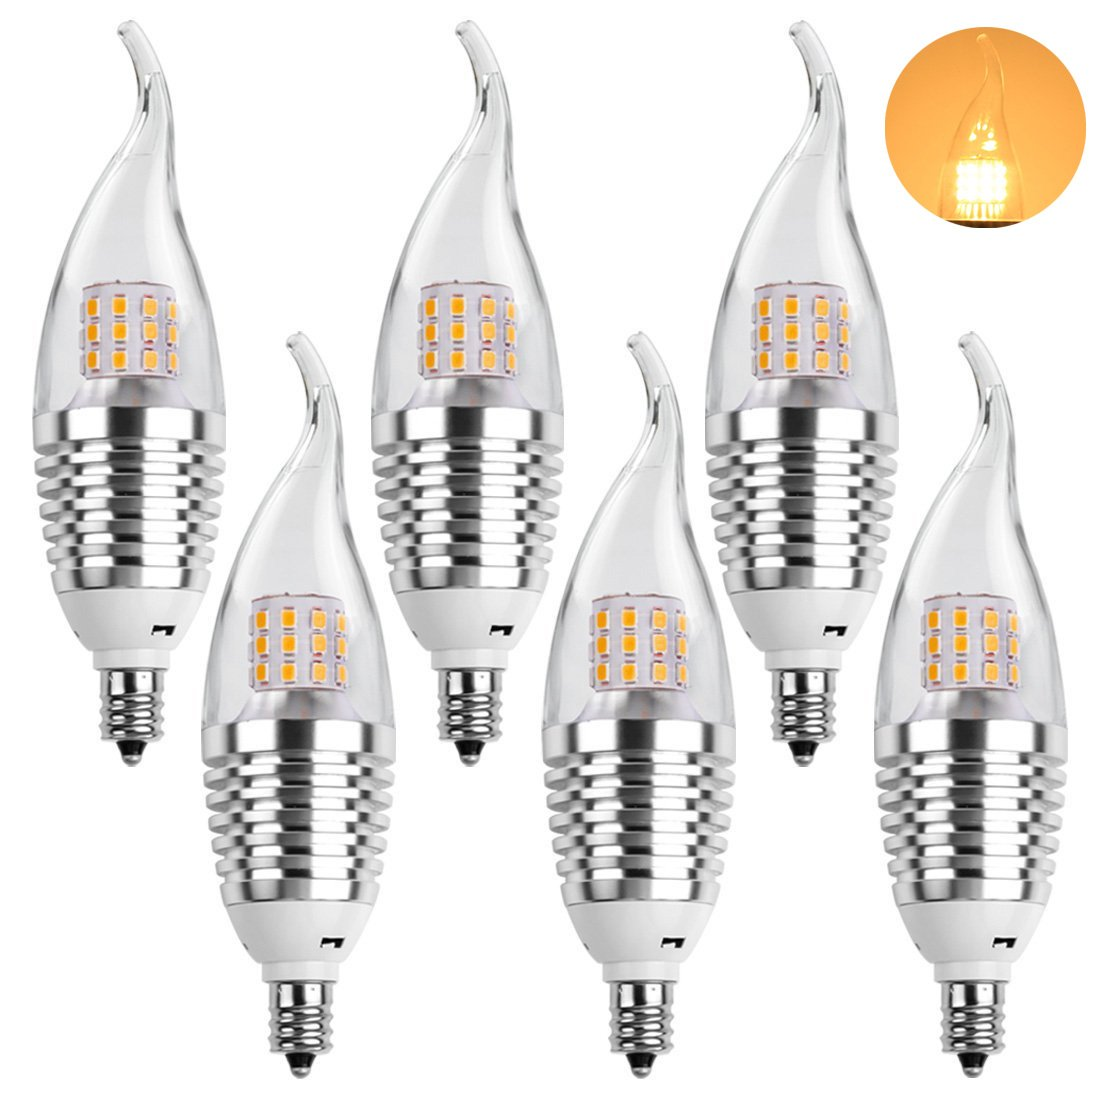 LEDMO E12 LED Candelabra Bulb, 7W E12 Base, Warm White 2800K LED Candle  Bulbs, 60 Watt Incandescent Bulb Equivalent, 630 Lumens LED Bulb Lights, ...